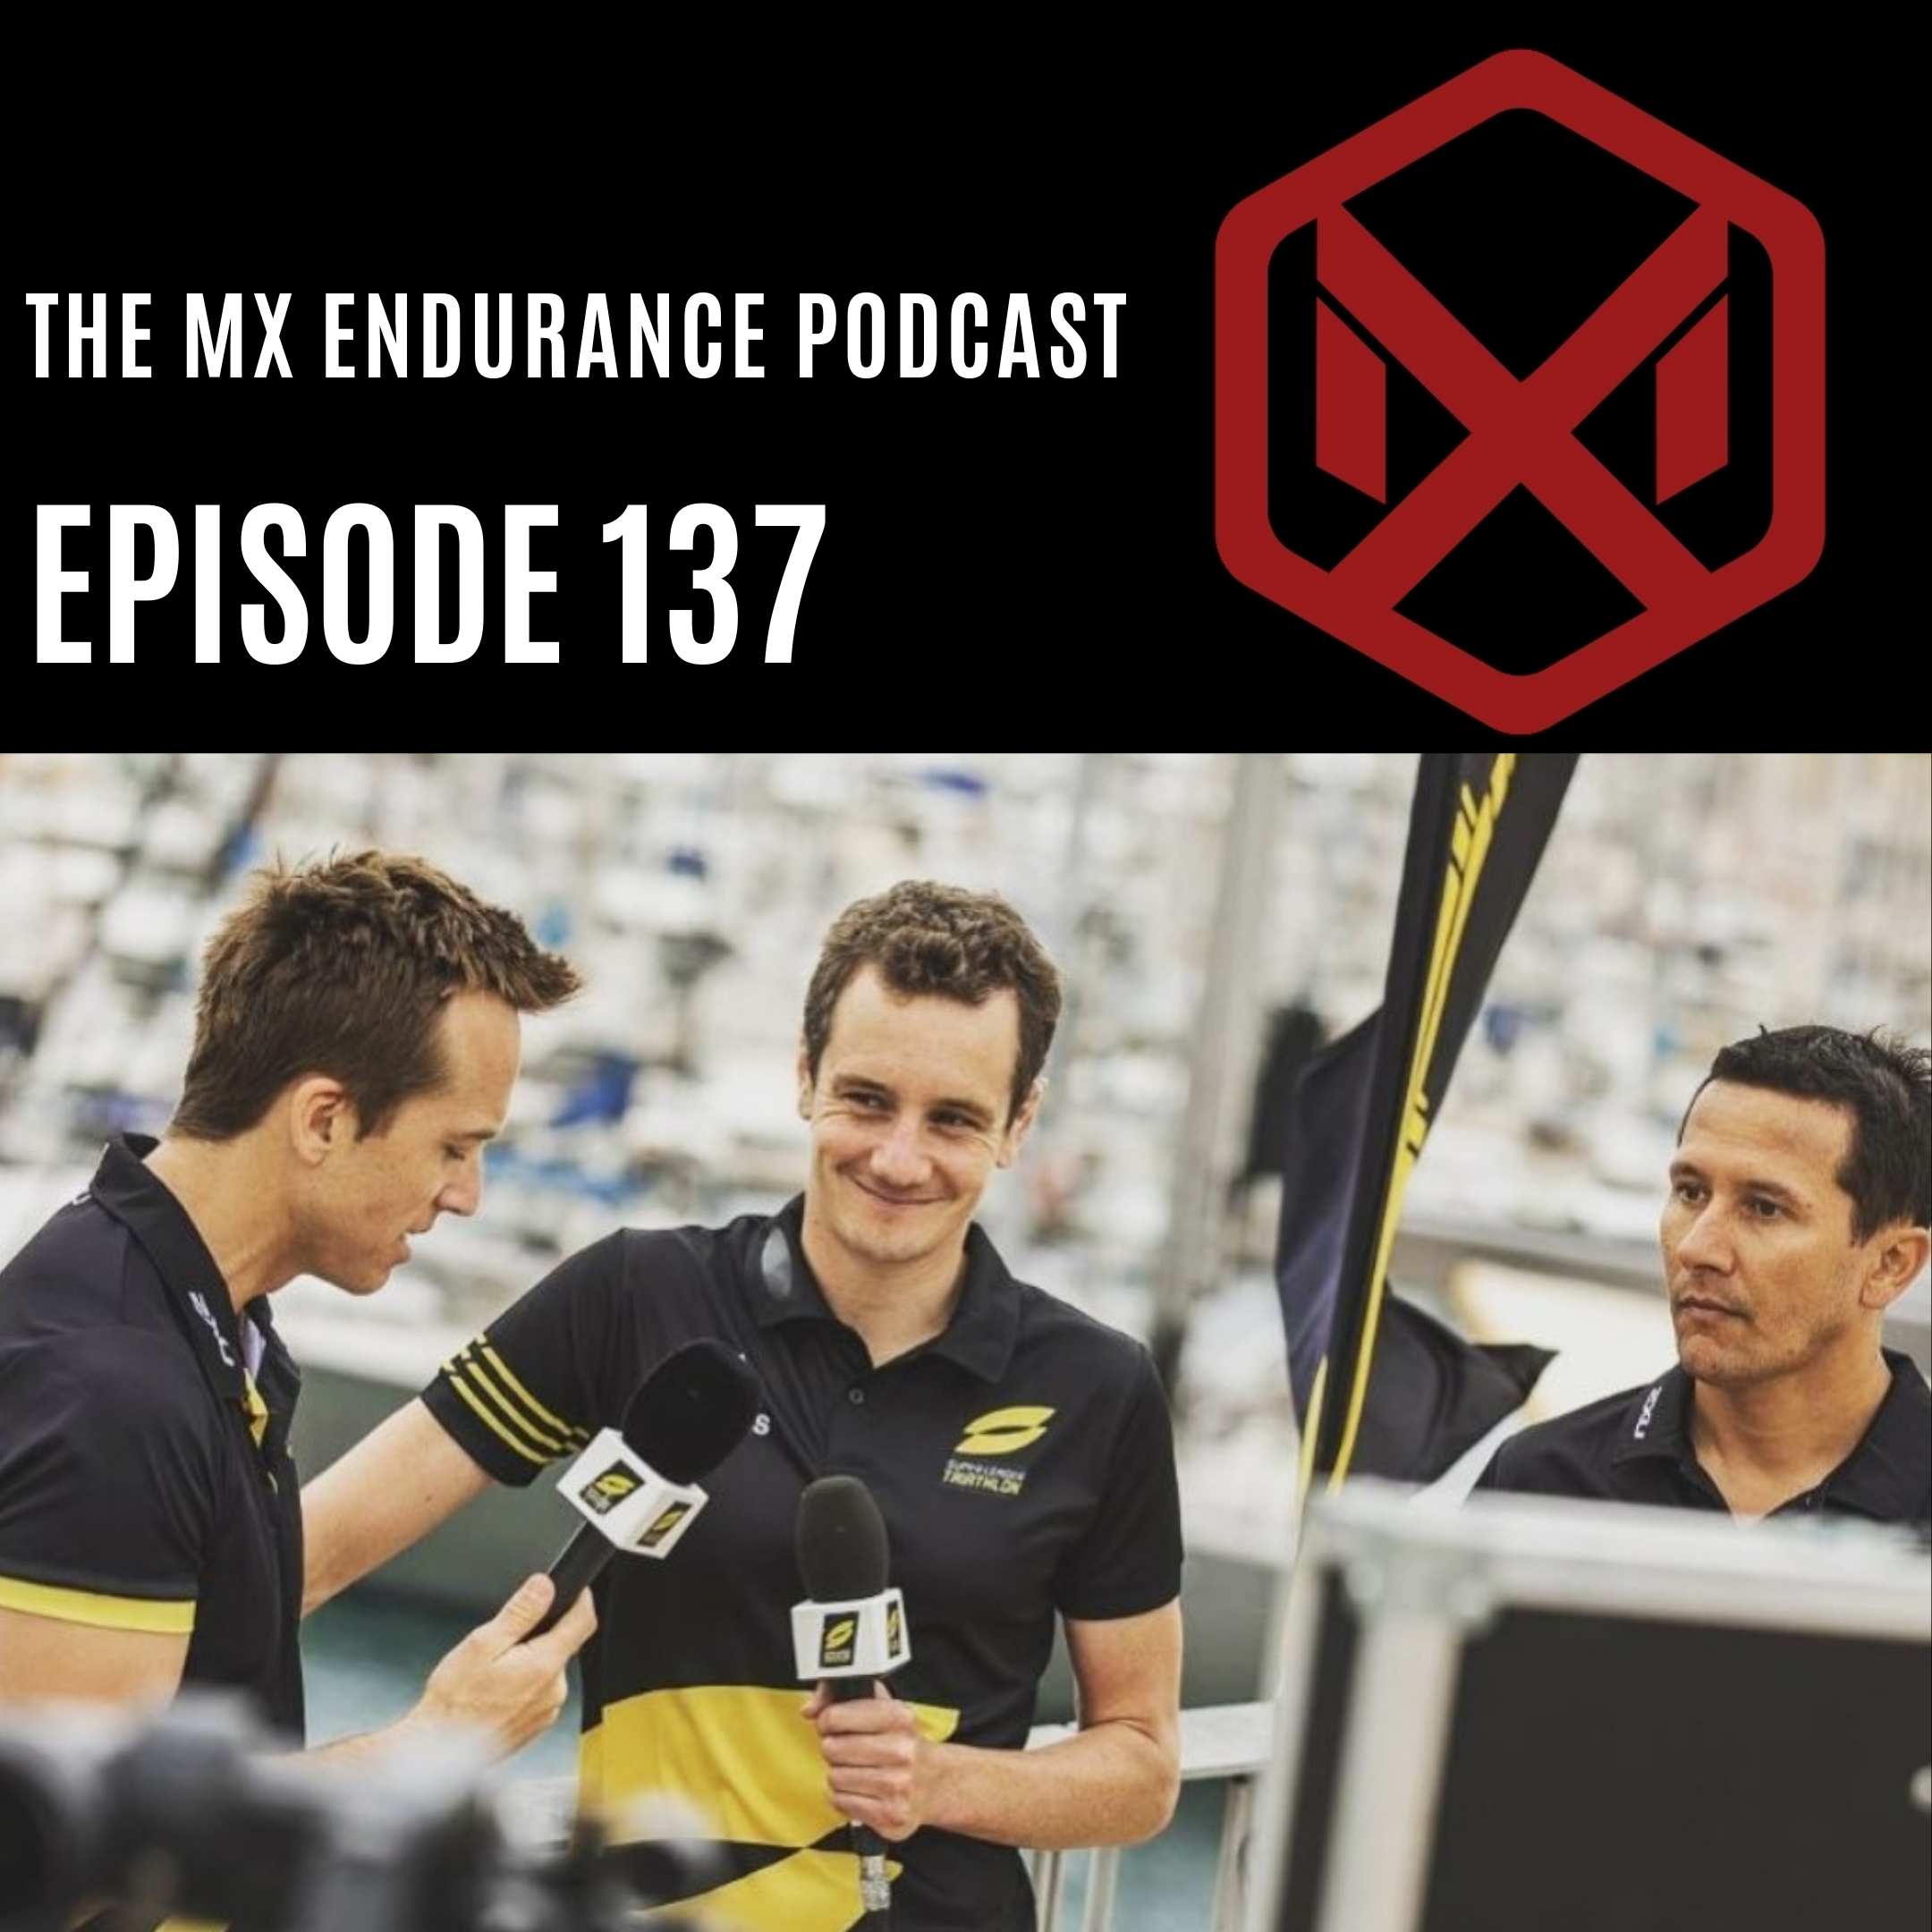 #137 - Can Triathlon Work For TV with Chris McCormack and Will McCloy